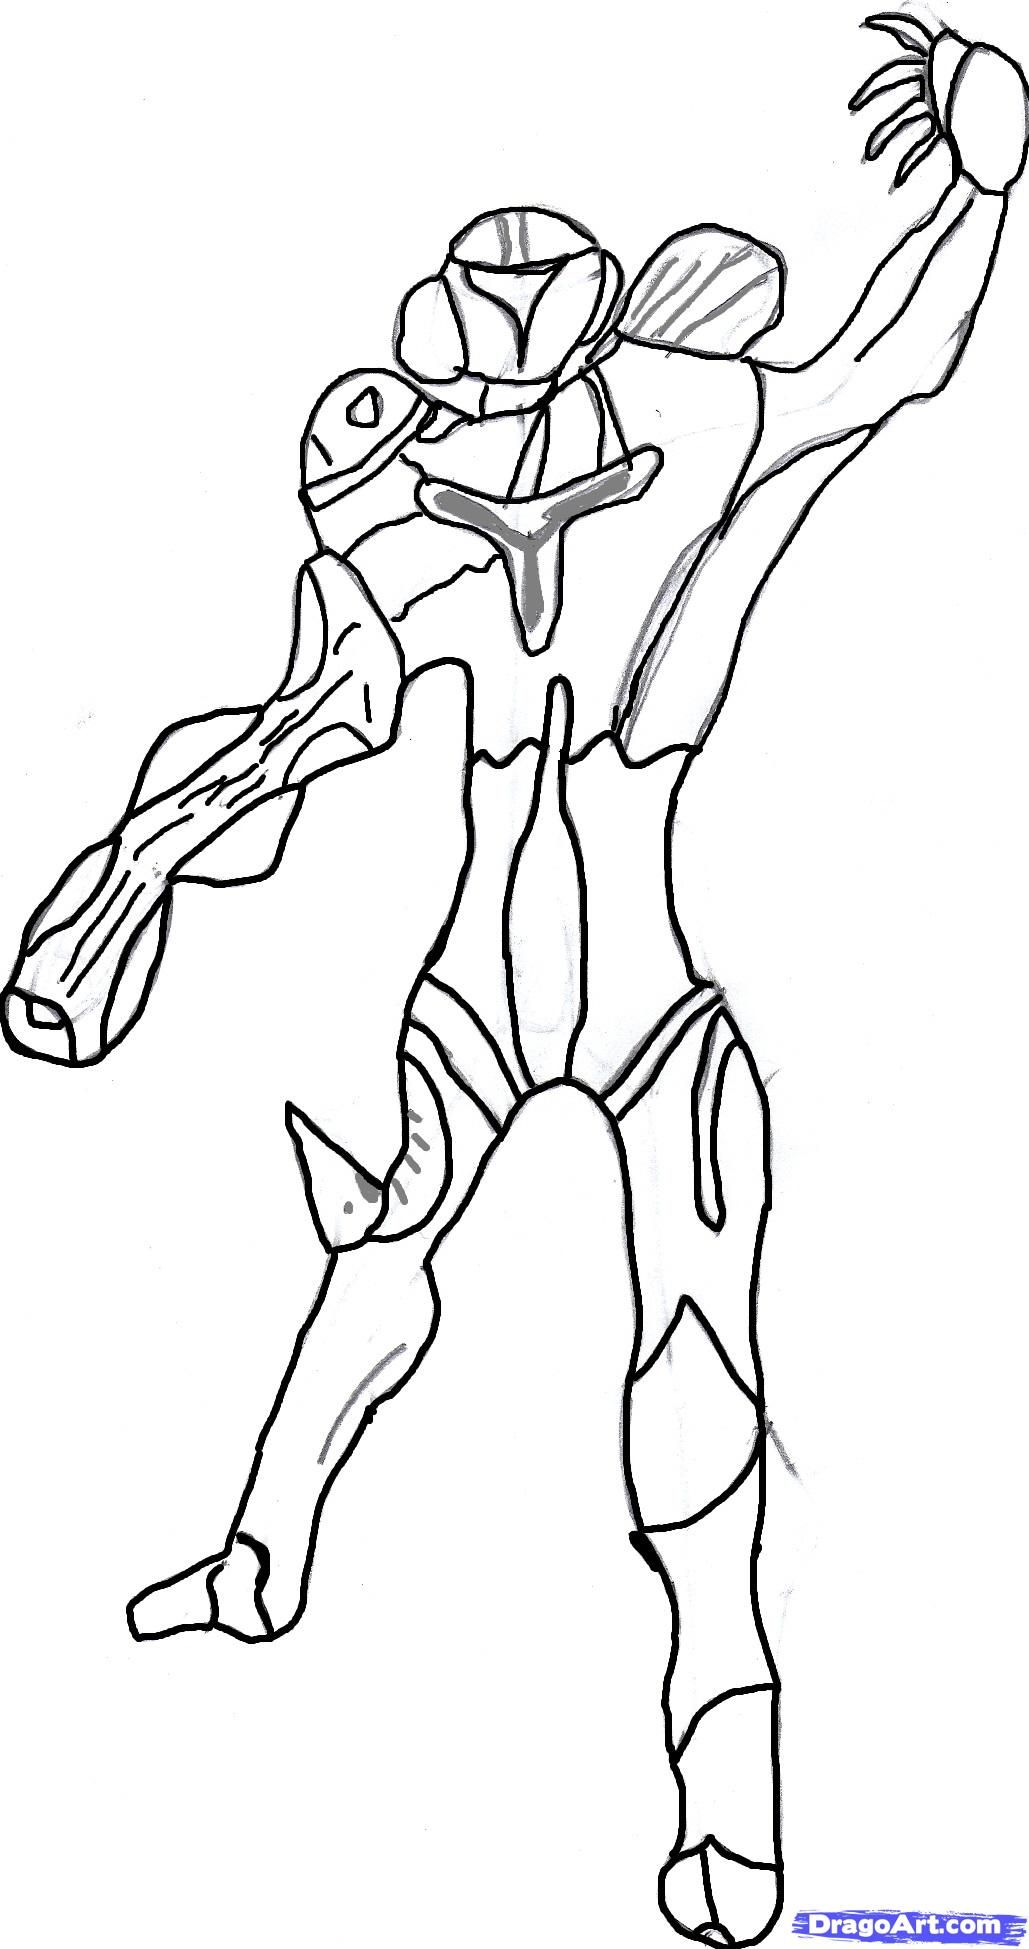 metroid coloring page coloring home